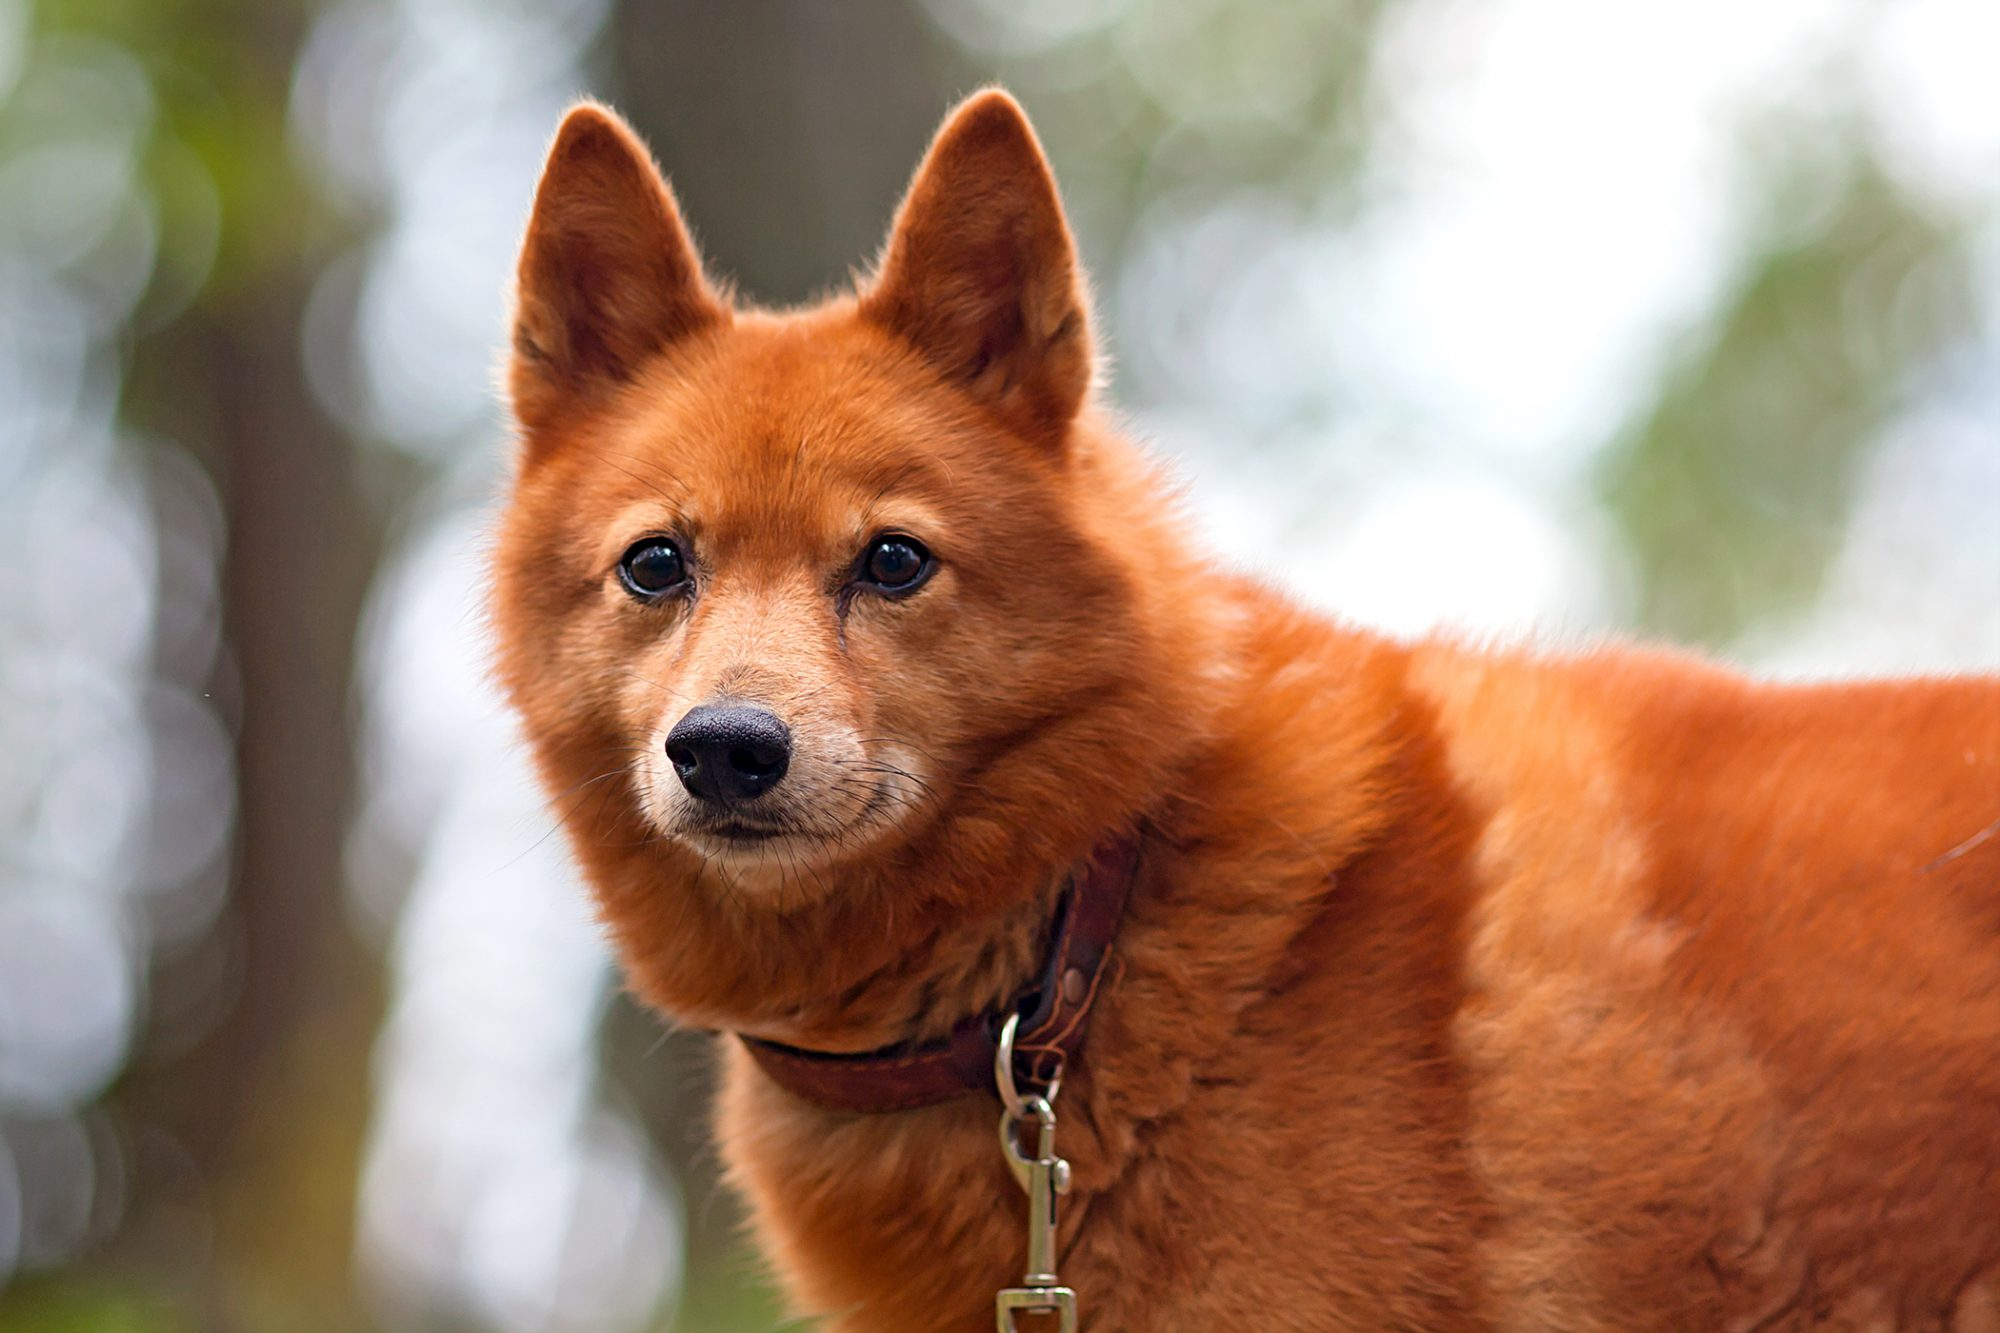 finnish spitz puppy wearing a red leather collar standing in a forest